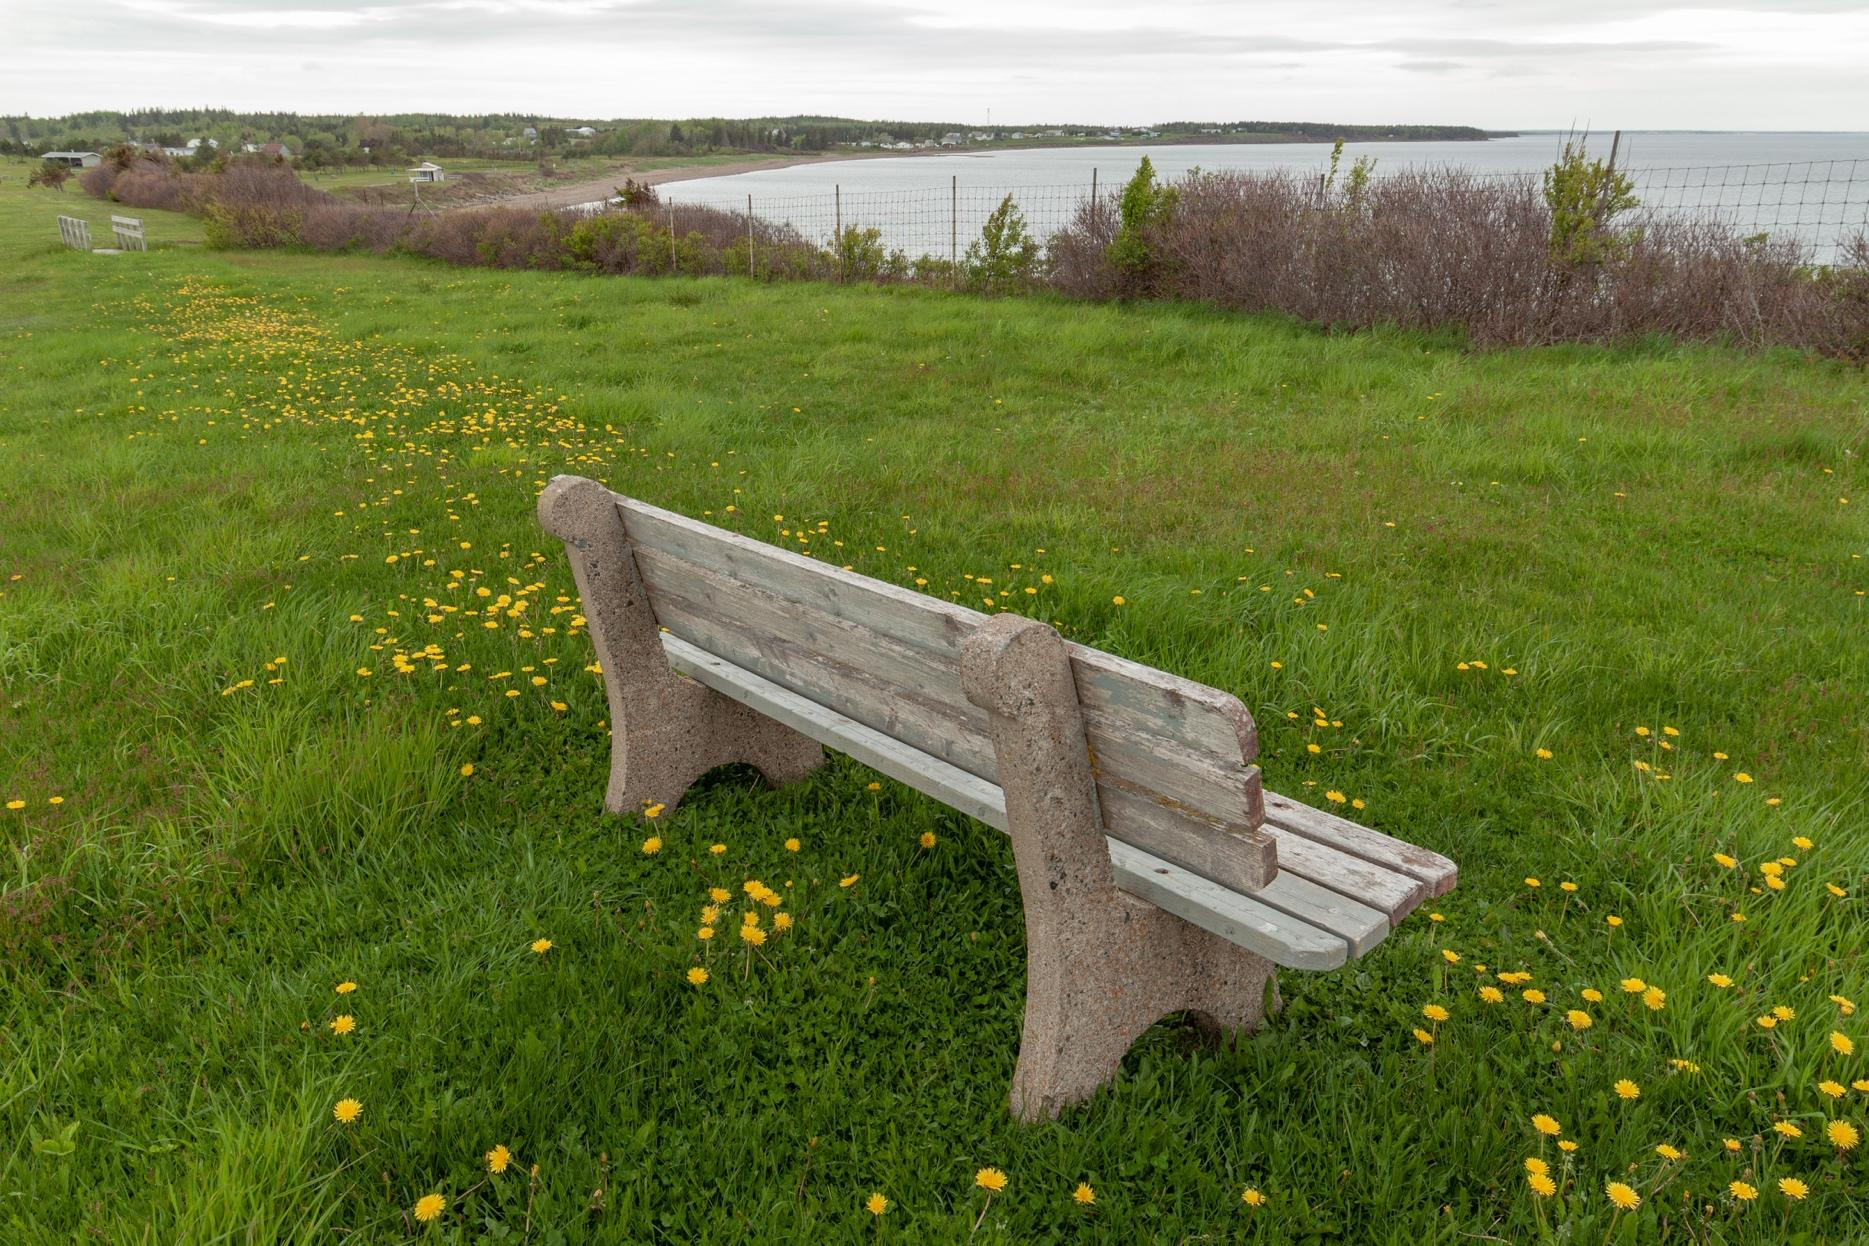 A bench in a grassy fieldDescription automatically generated with medium confidence